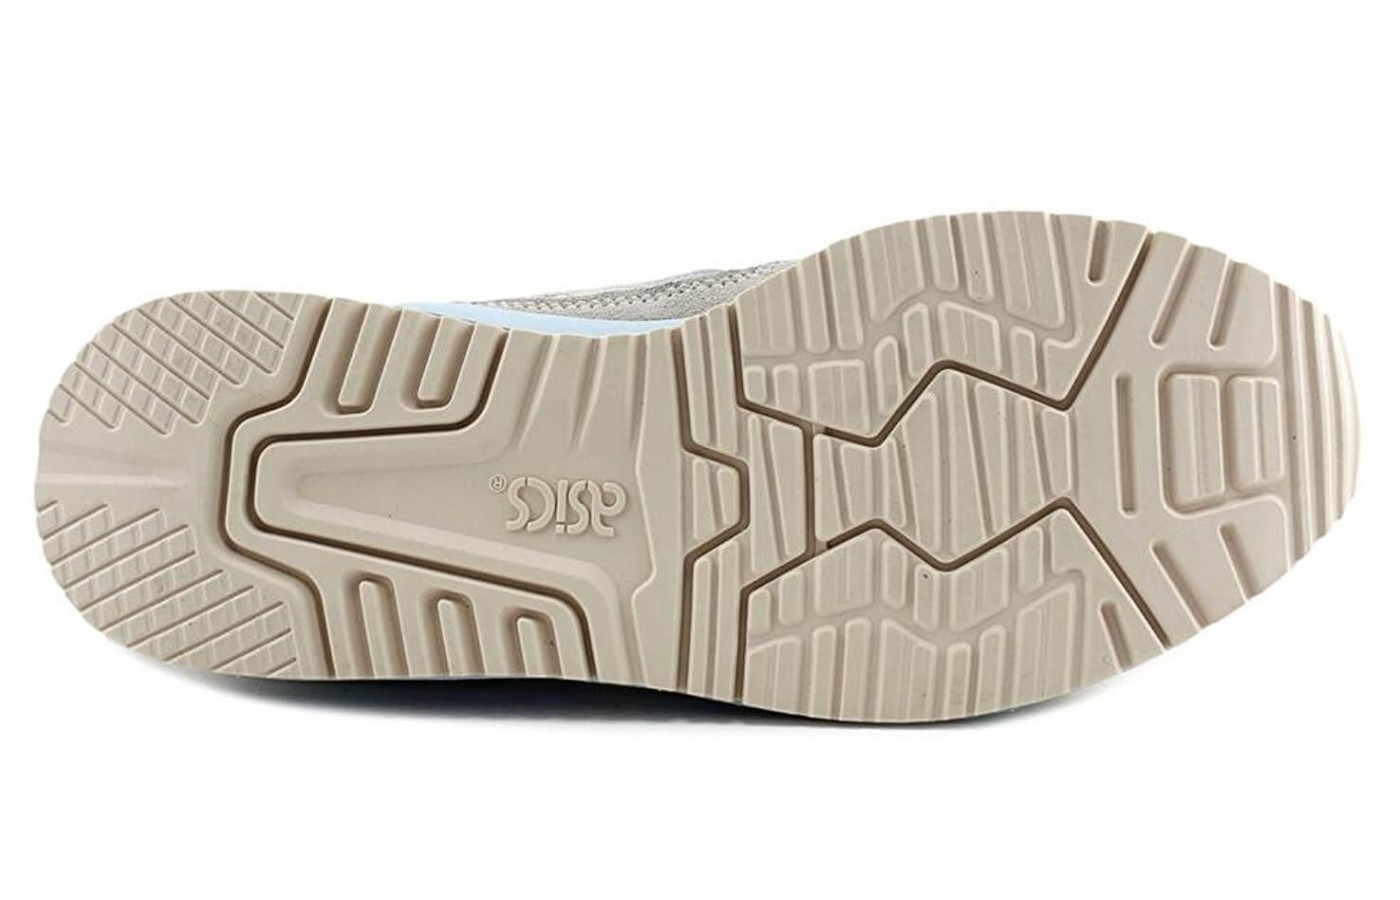 The Asics Gel Lyte III has a thick rubber outsole